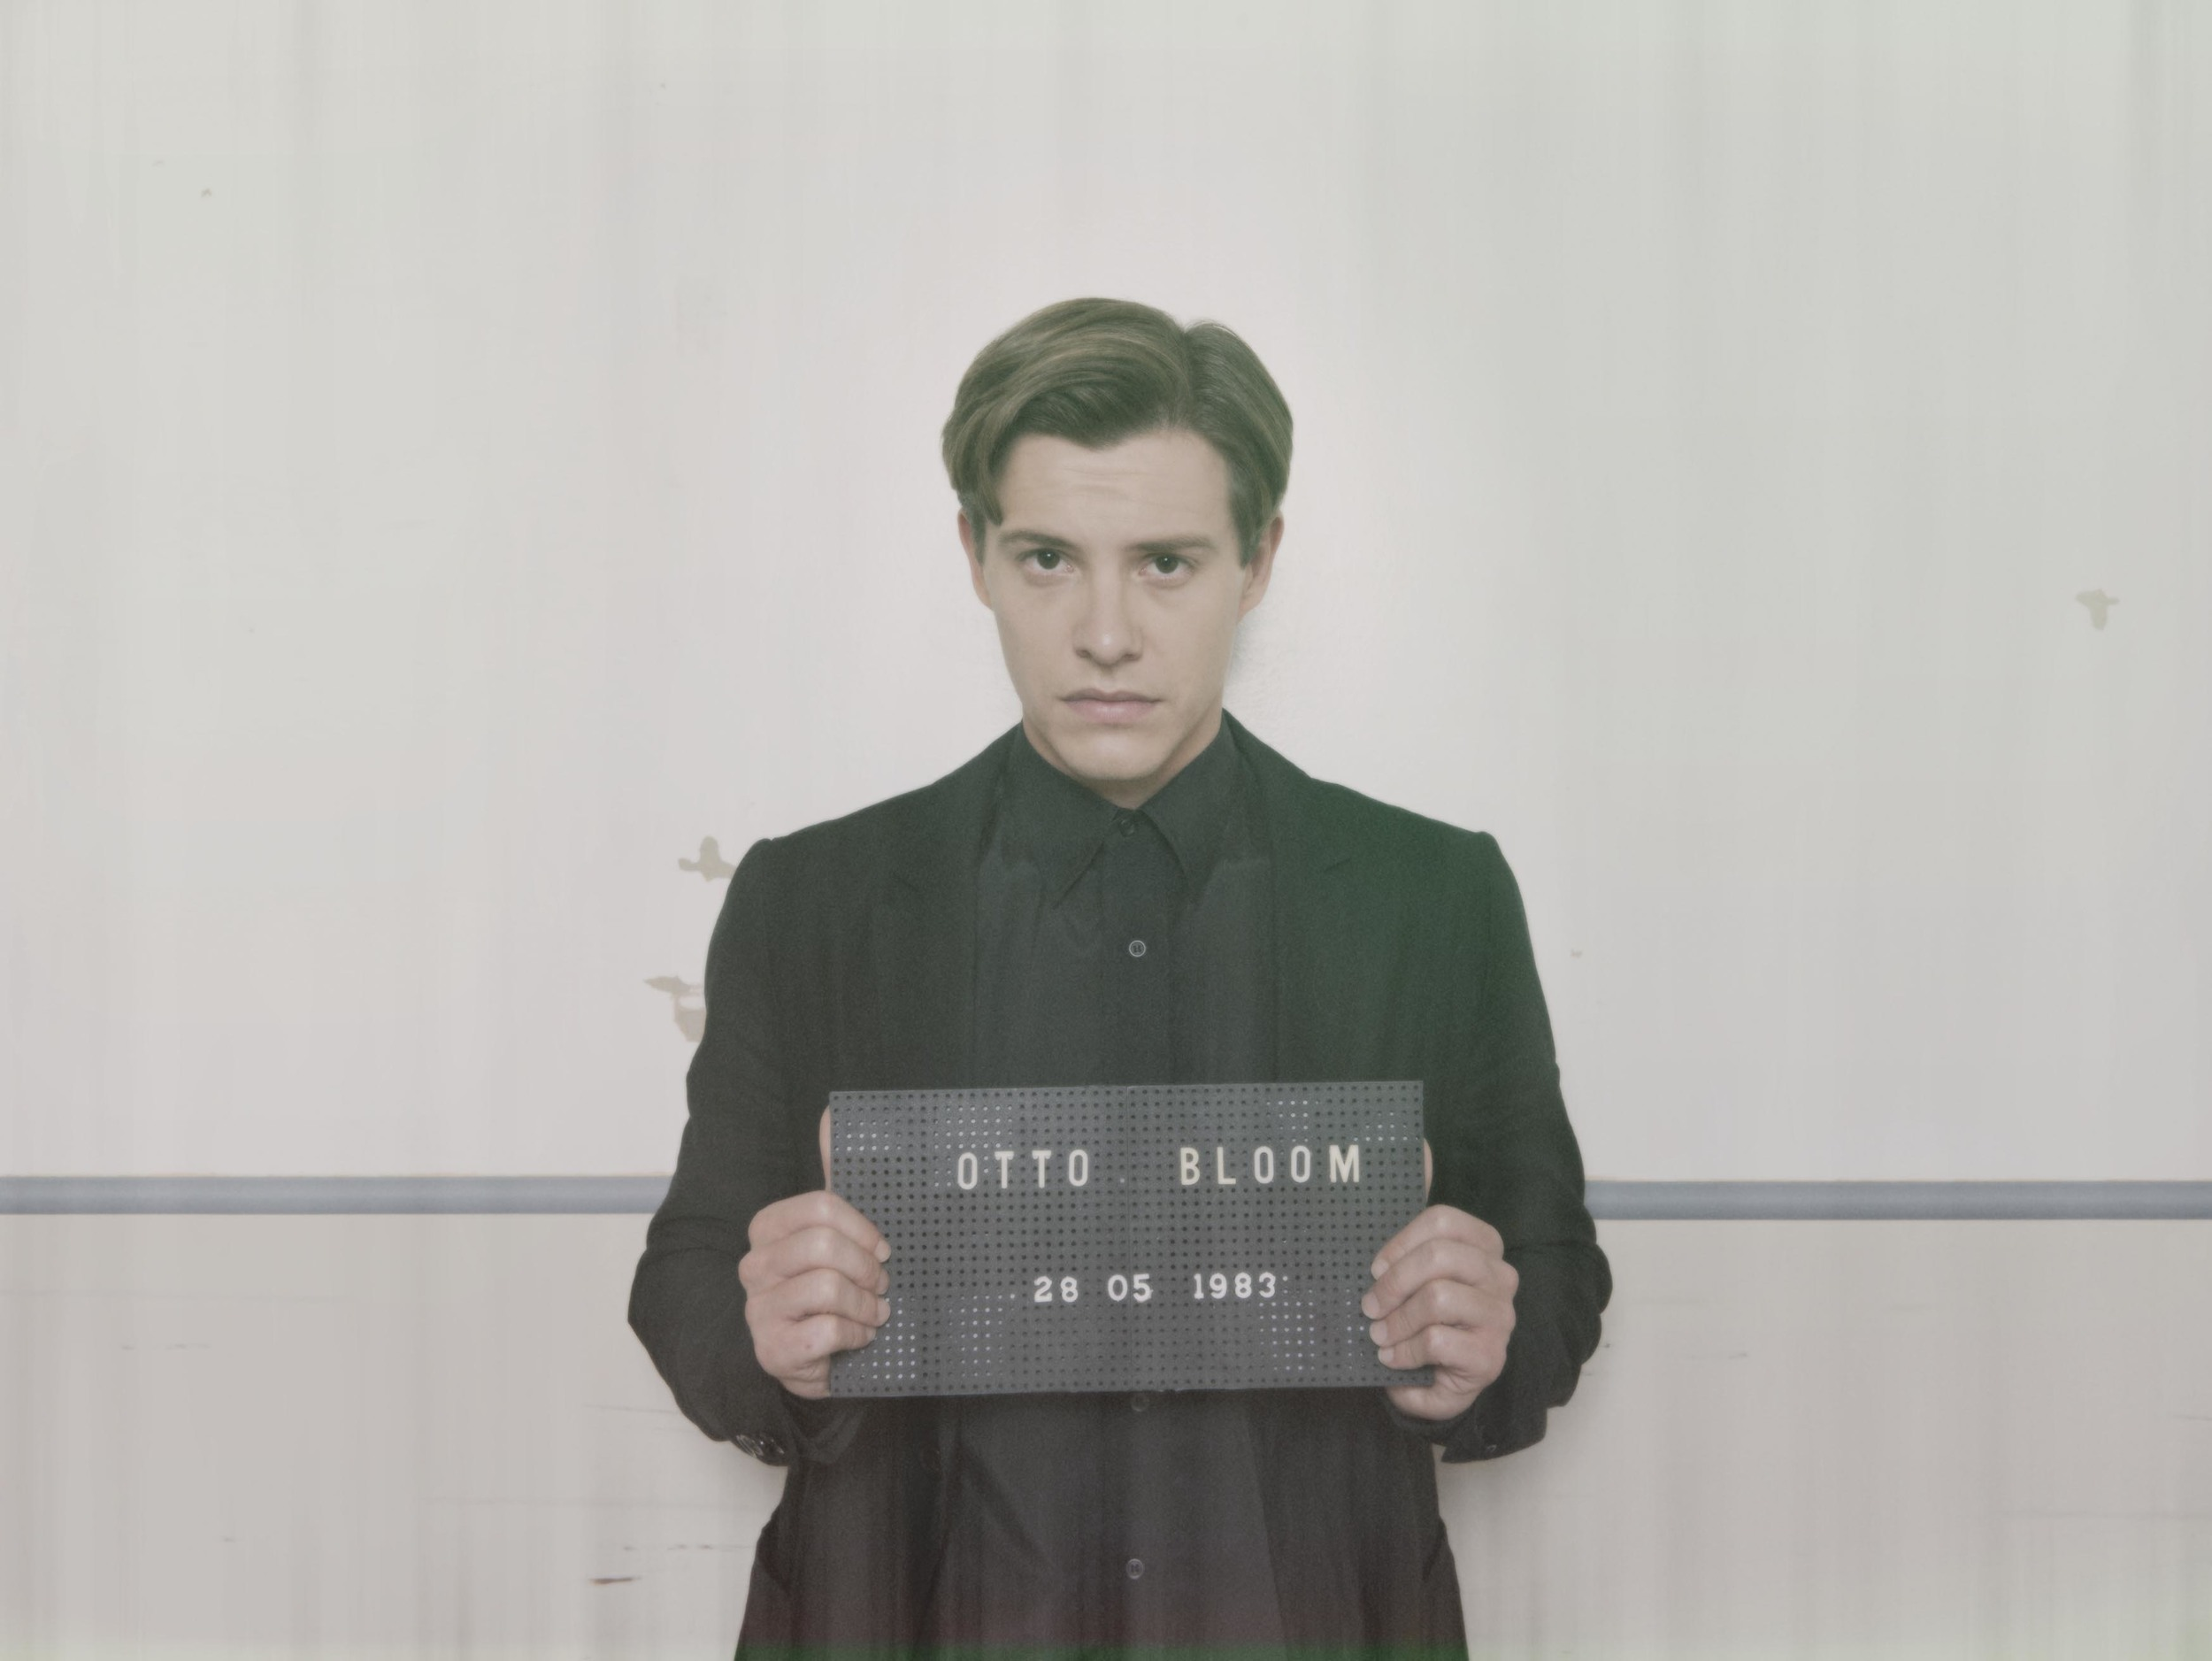 16. Xavier Samuel is OTTO BLOOM Mugshot The Death and Life of Otto Bloom photo by Suzy Wood.jpg